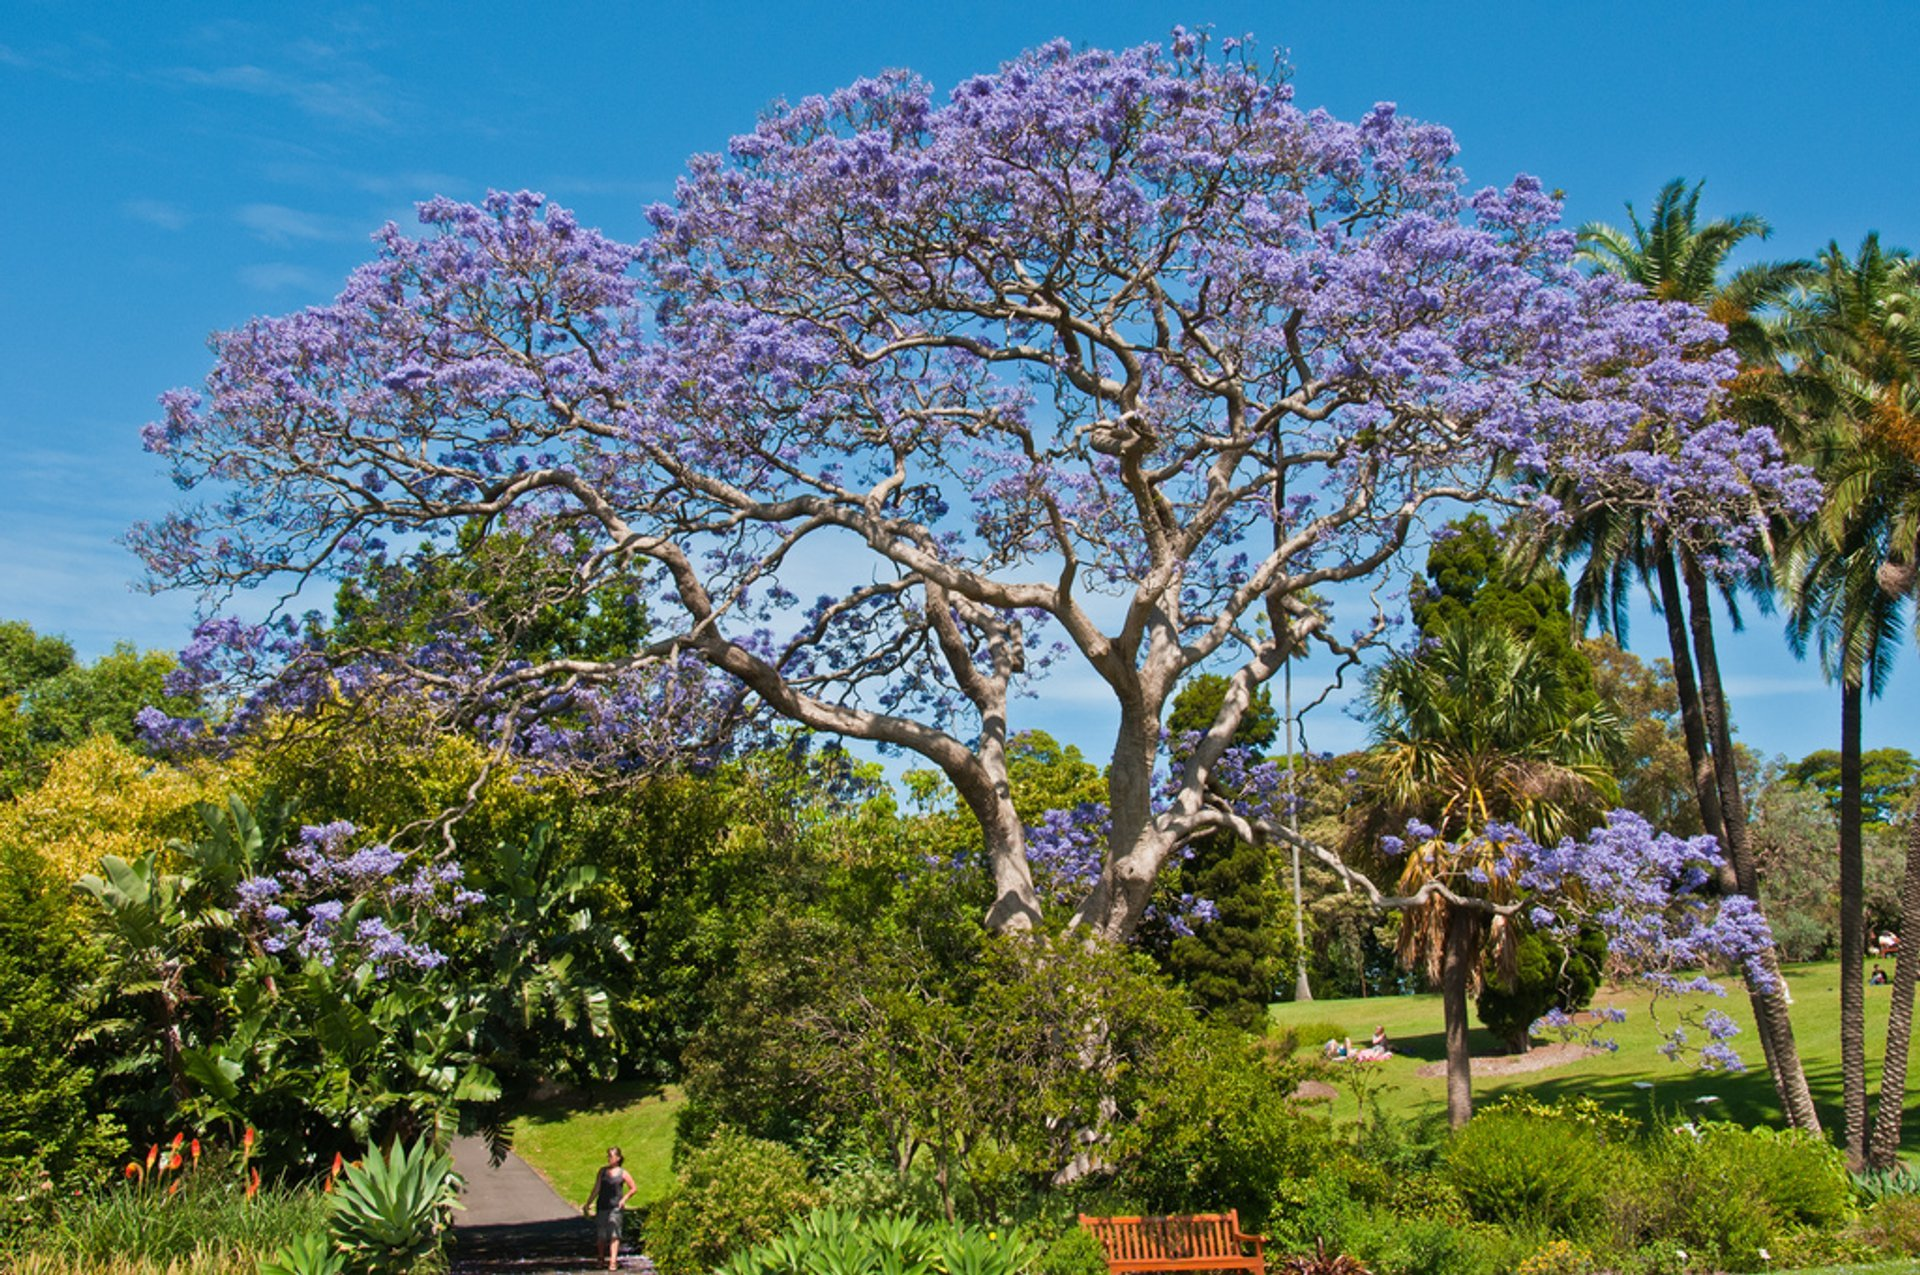 Jacaranda Trees in Bloom in Sydney 2019 - Best Time